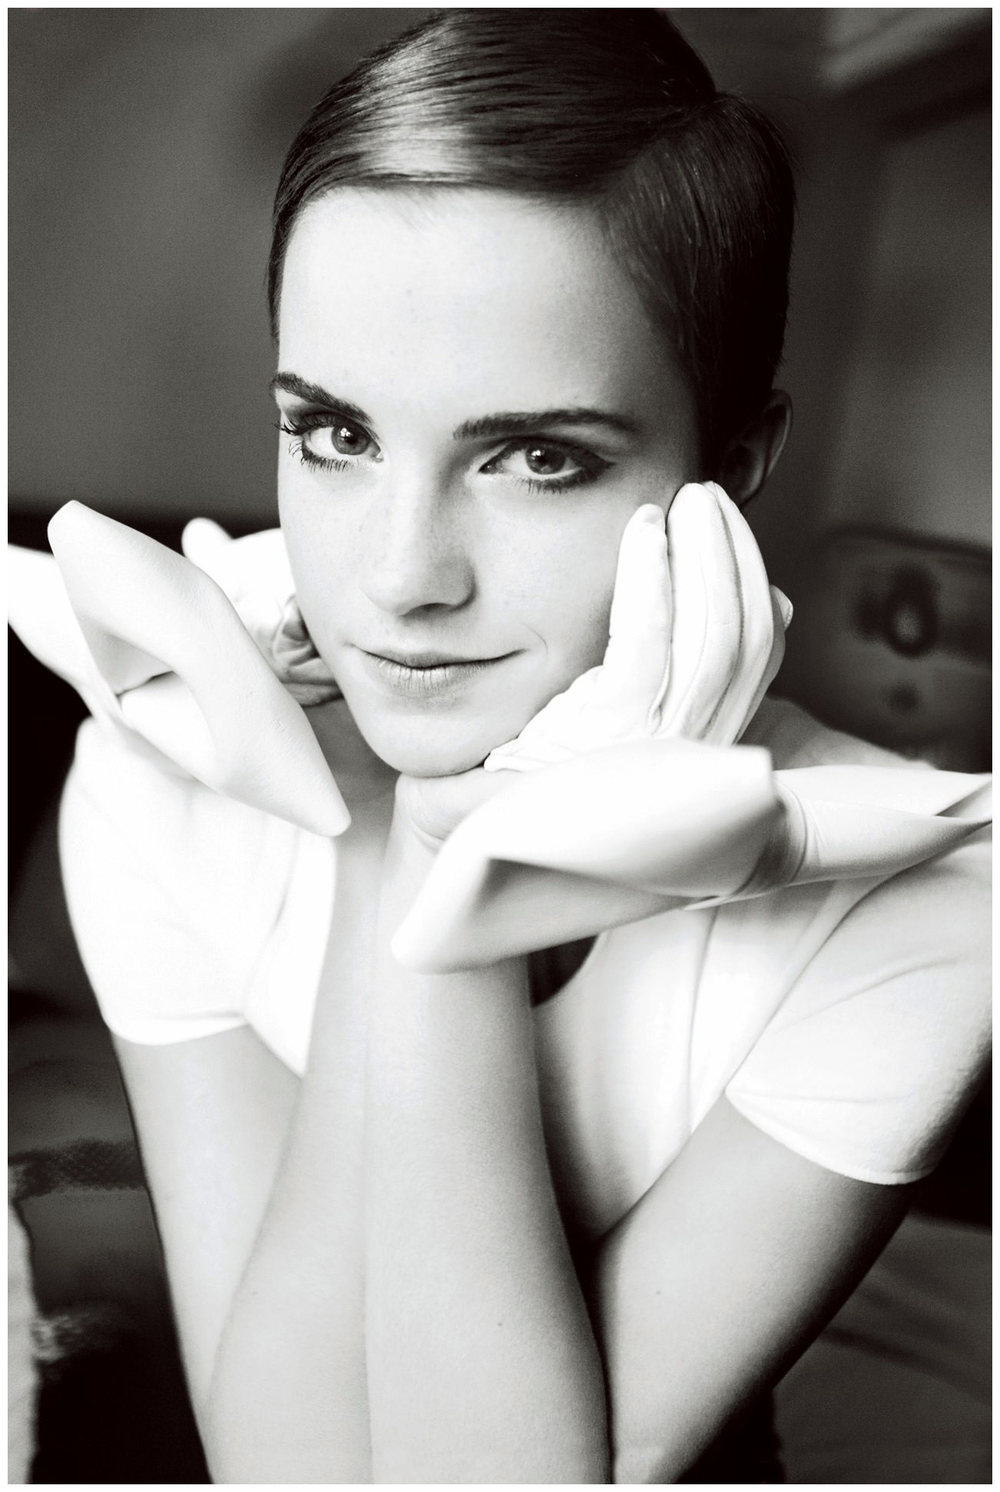 emma-watson-vogue-2010-photo-mario-testino.jpg